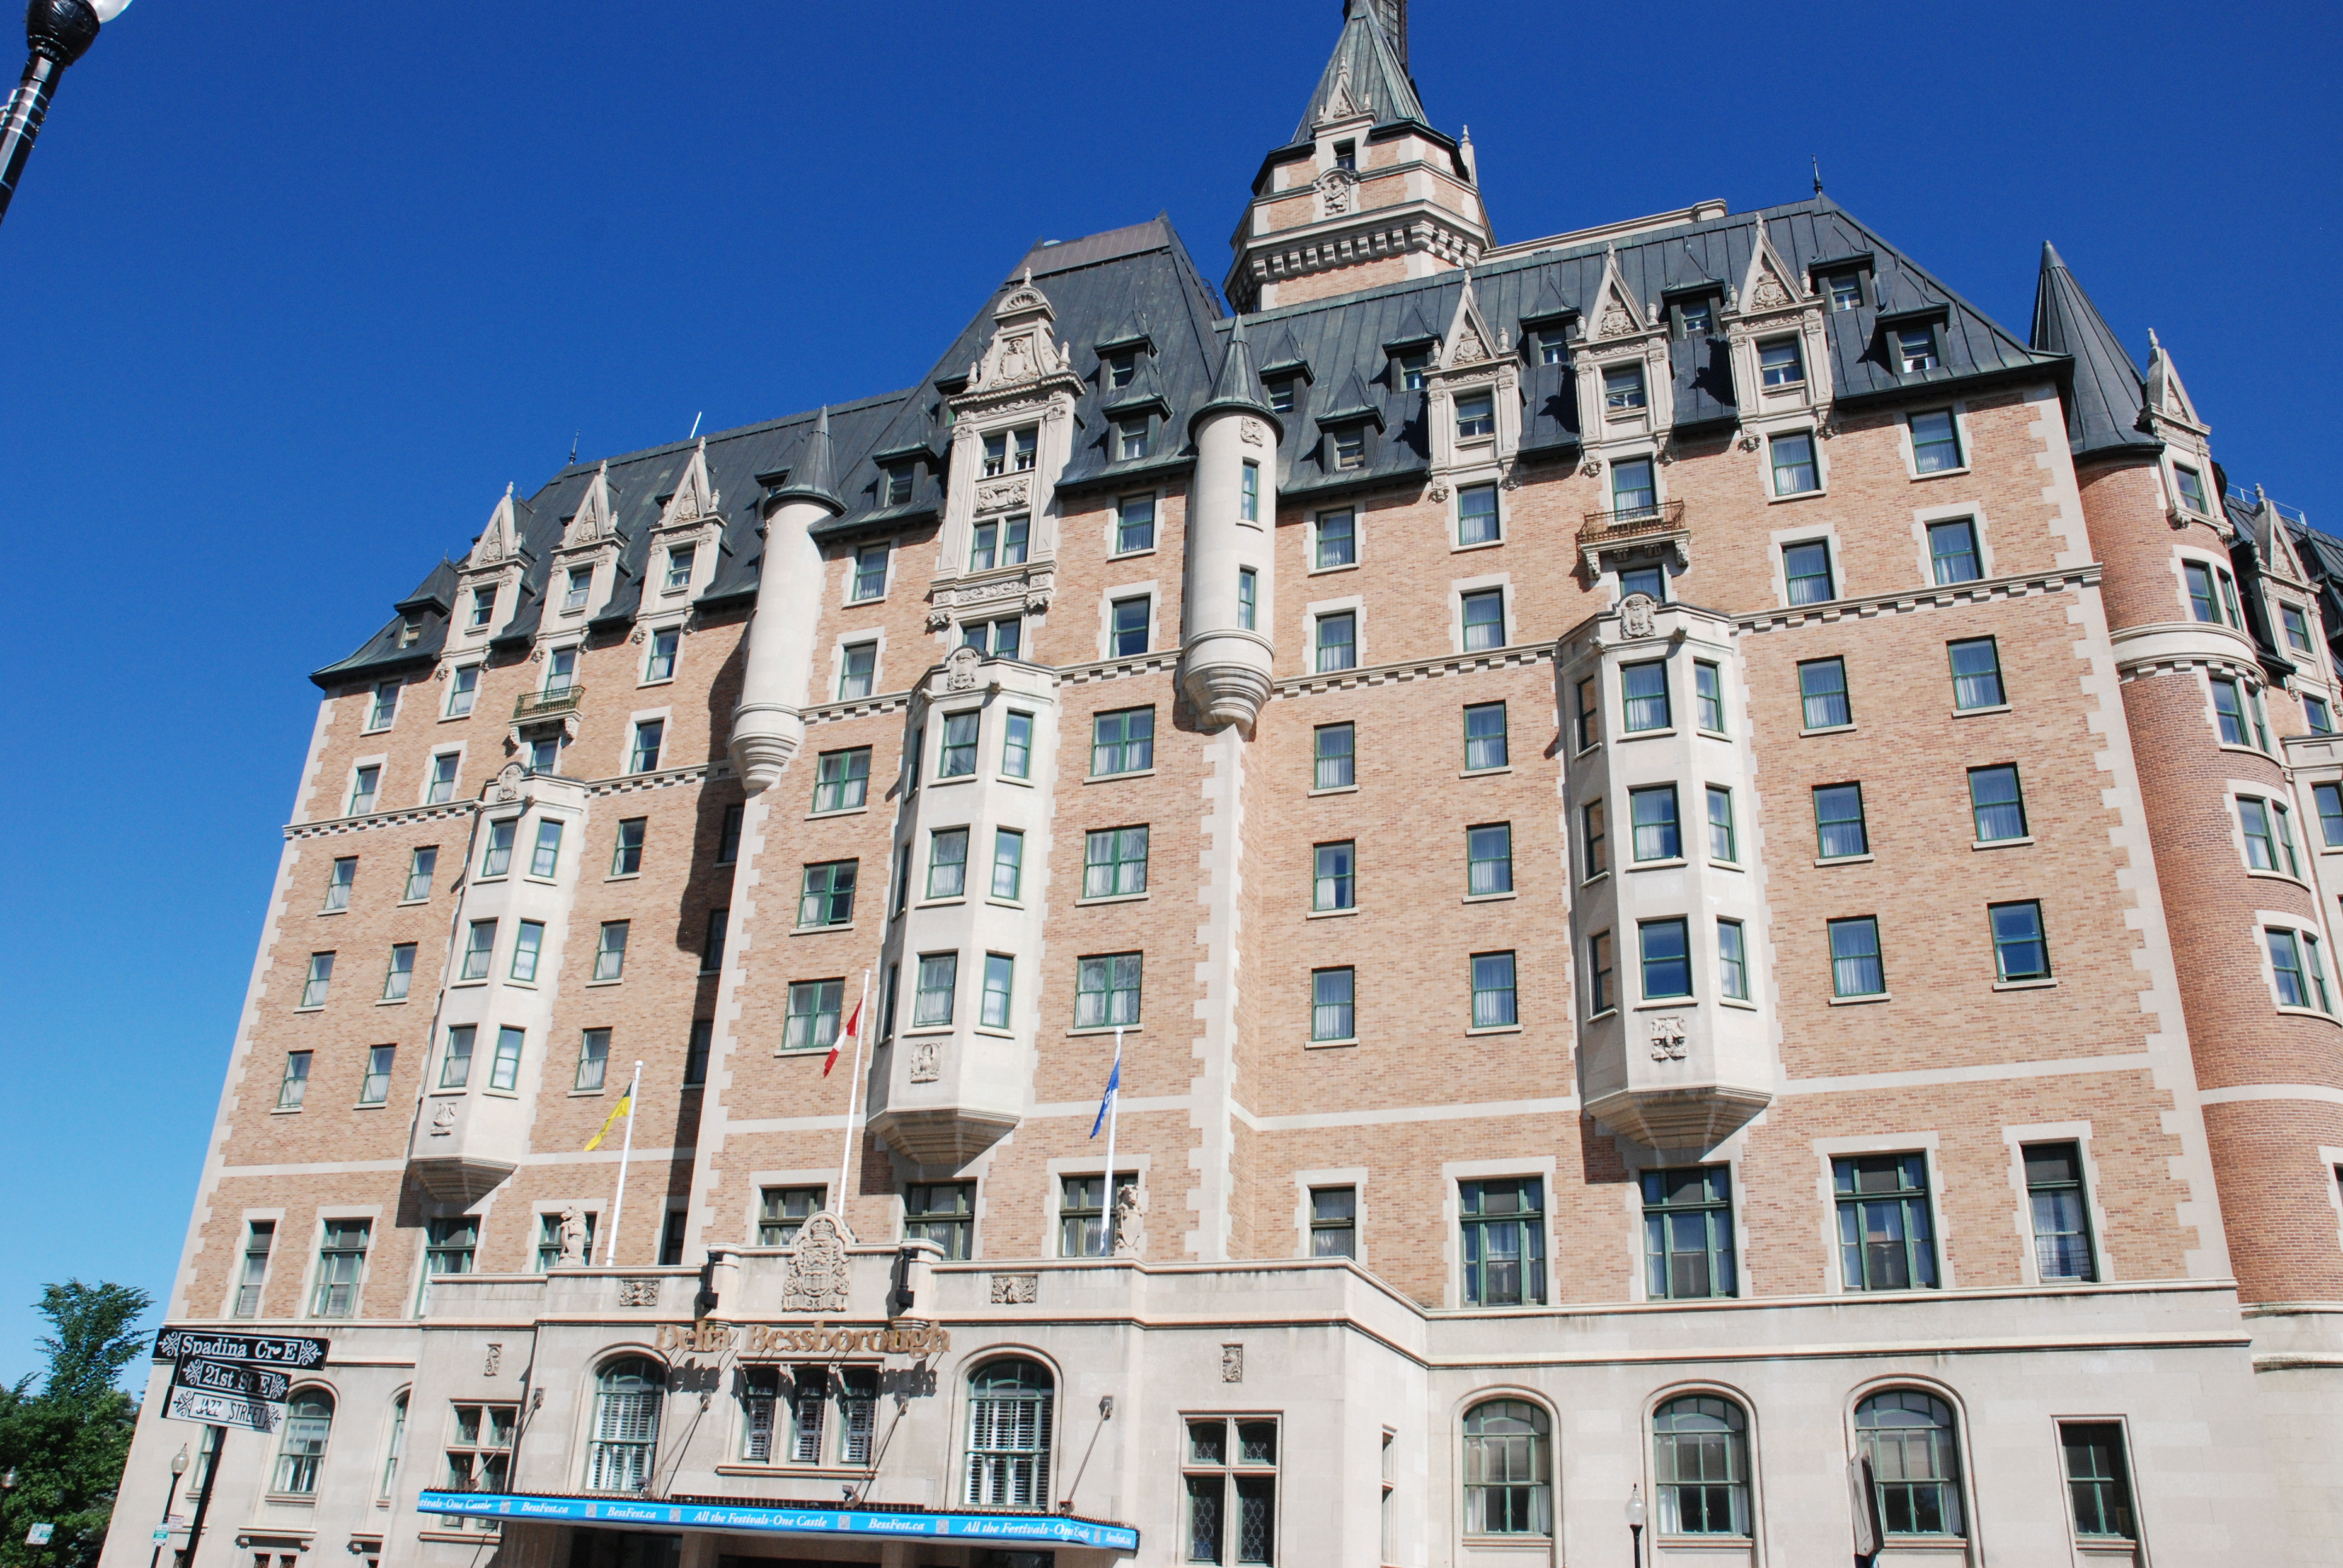 Bessborough Hotel Delta Bessborough Hotel